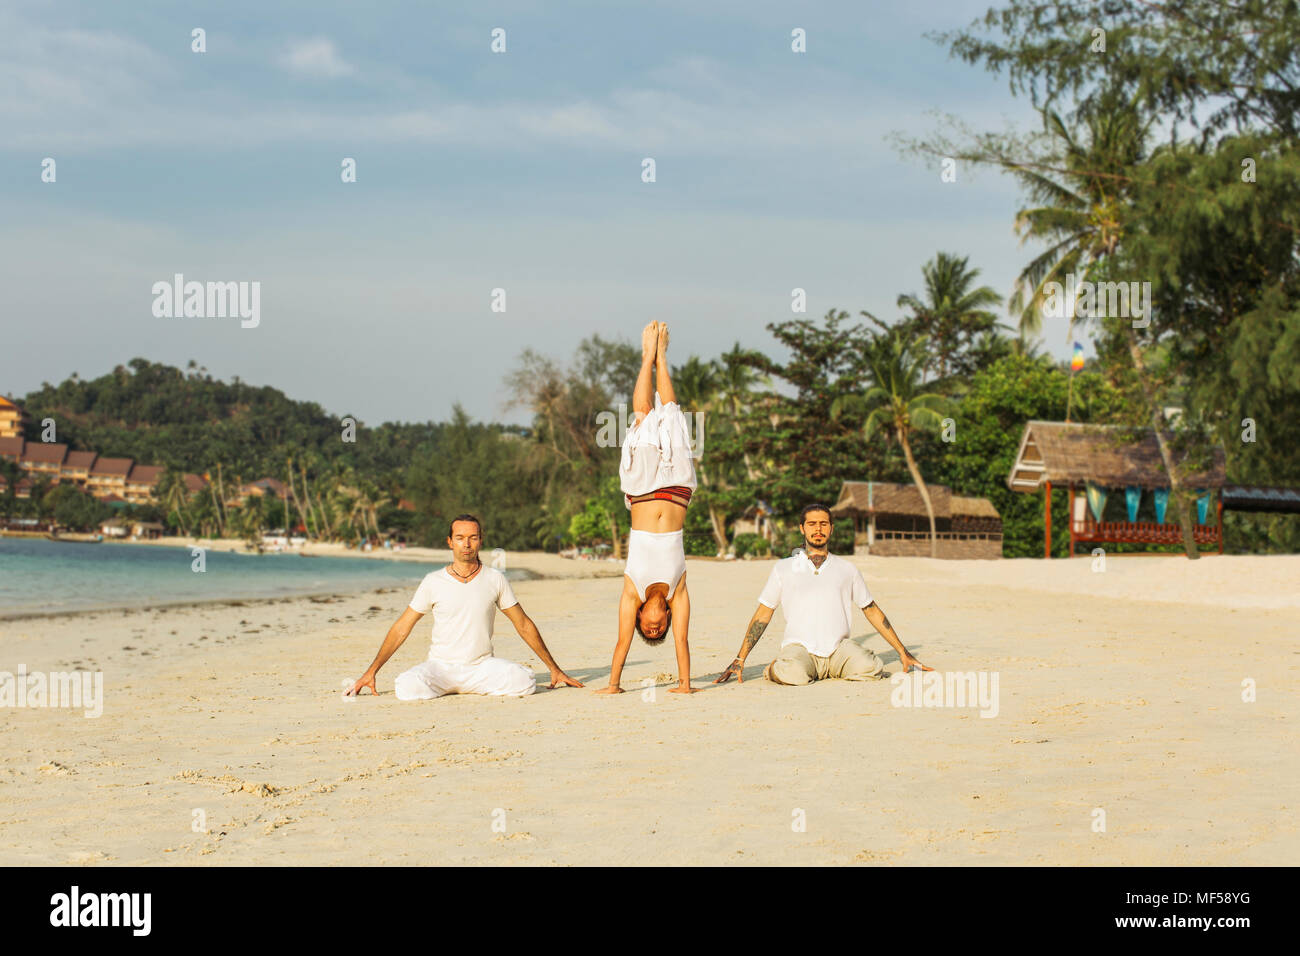 Thailand, Koh Phangan, three people doing yoga on a beach - Stock Image